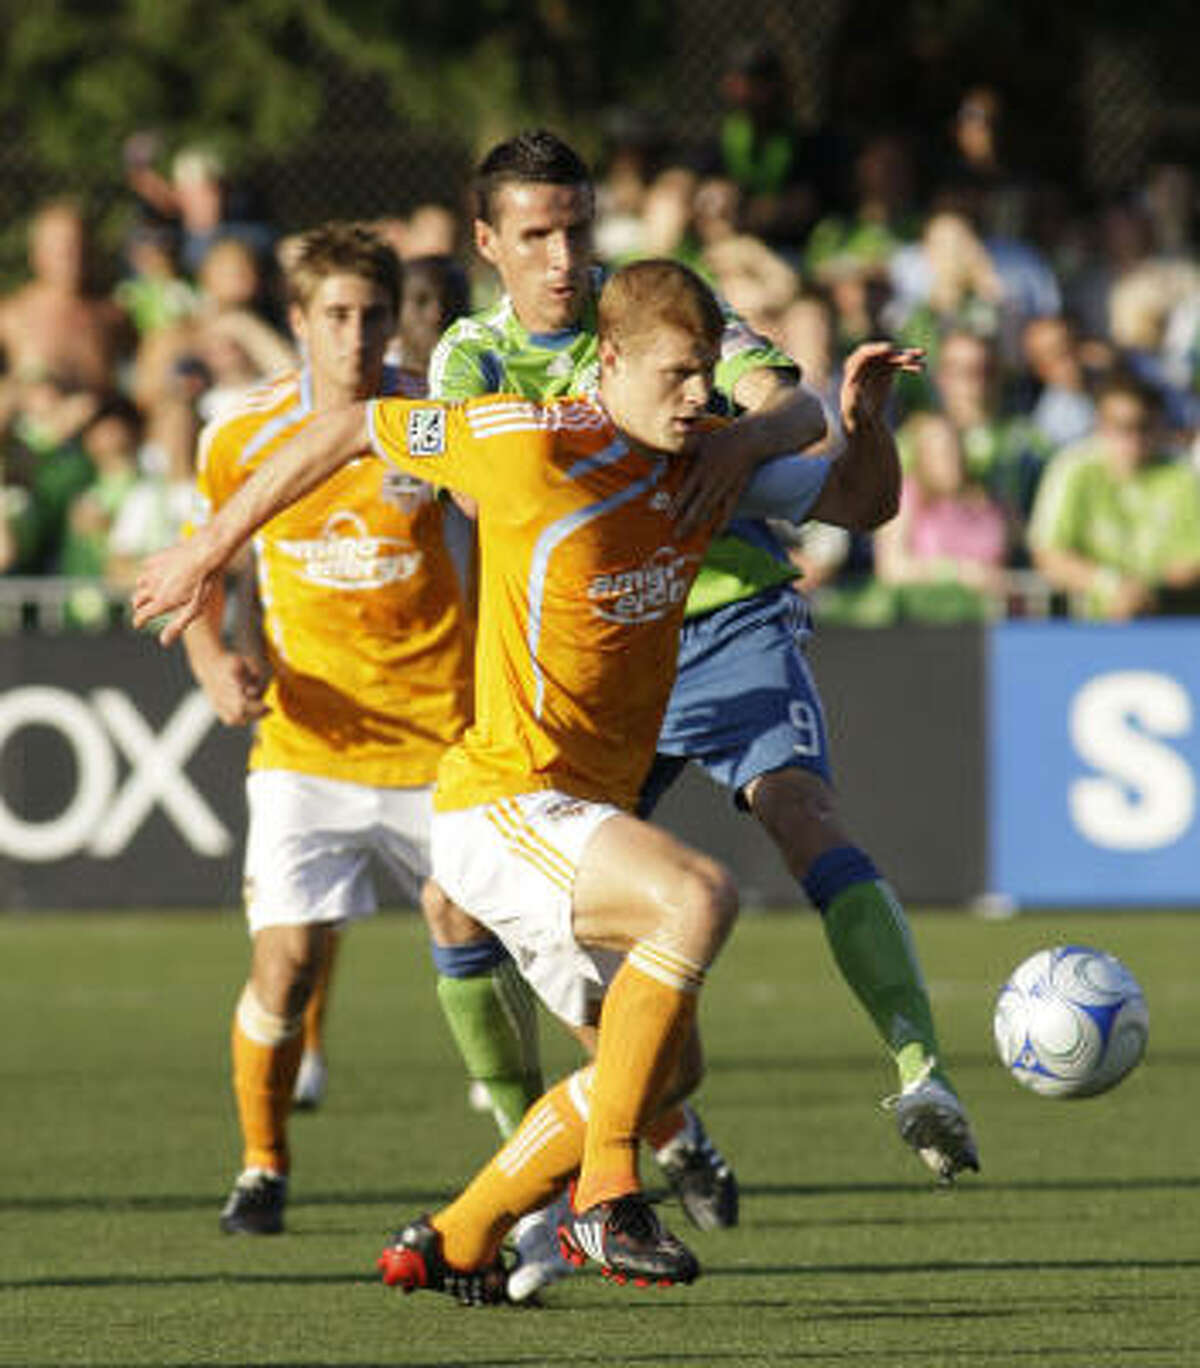 Houston Dynamo's Andrew Hainault, front, battles Seattle Sounders' Sebastien Le Toux for the ball in the first half.